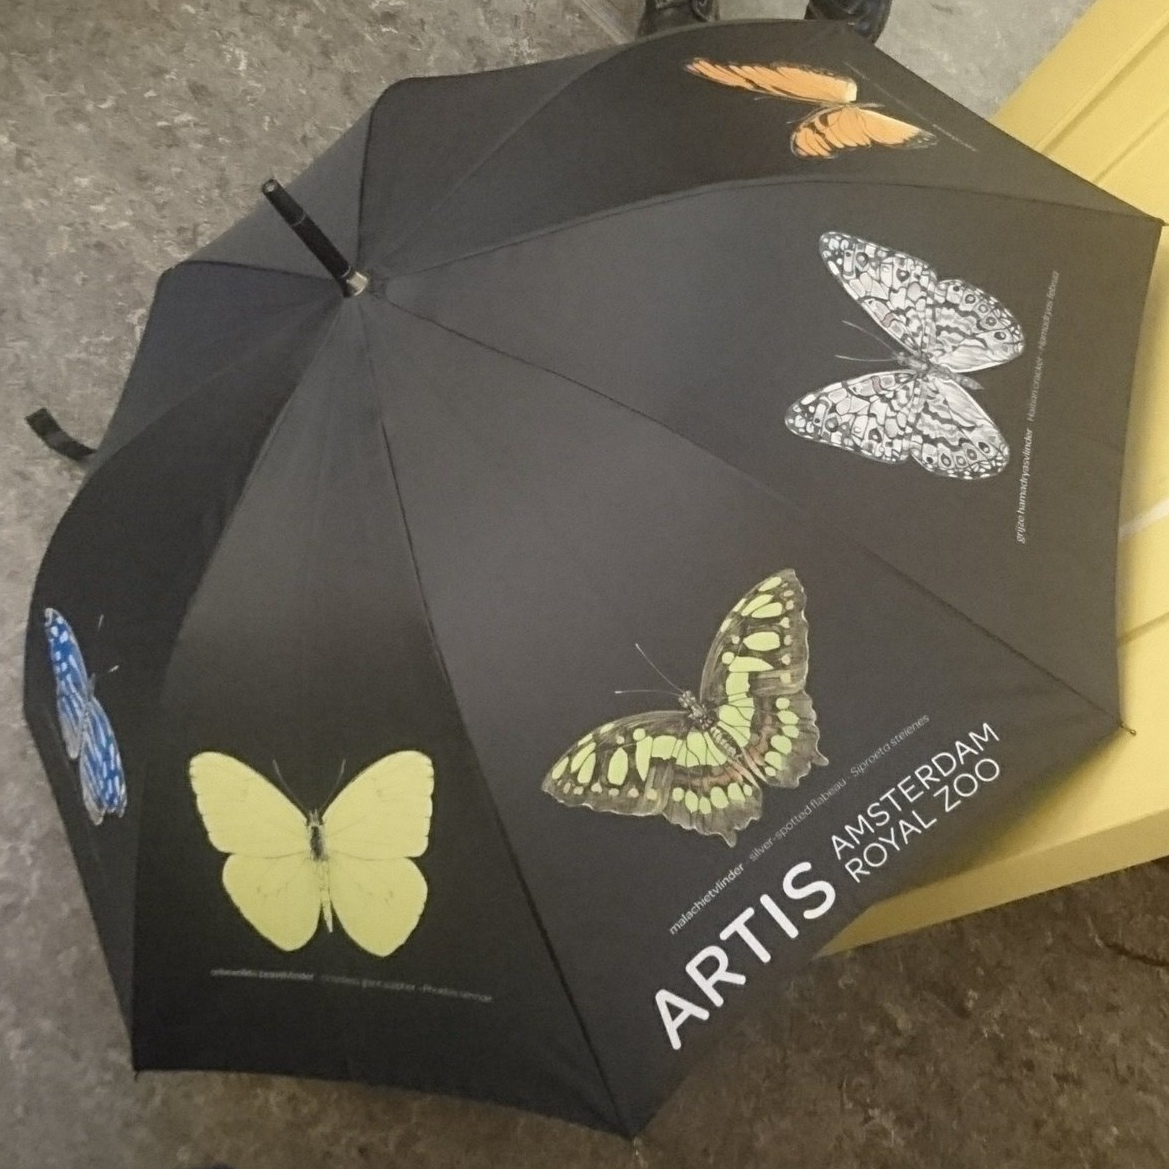 Umbrella for the shop